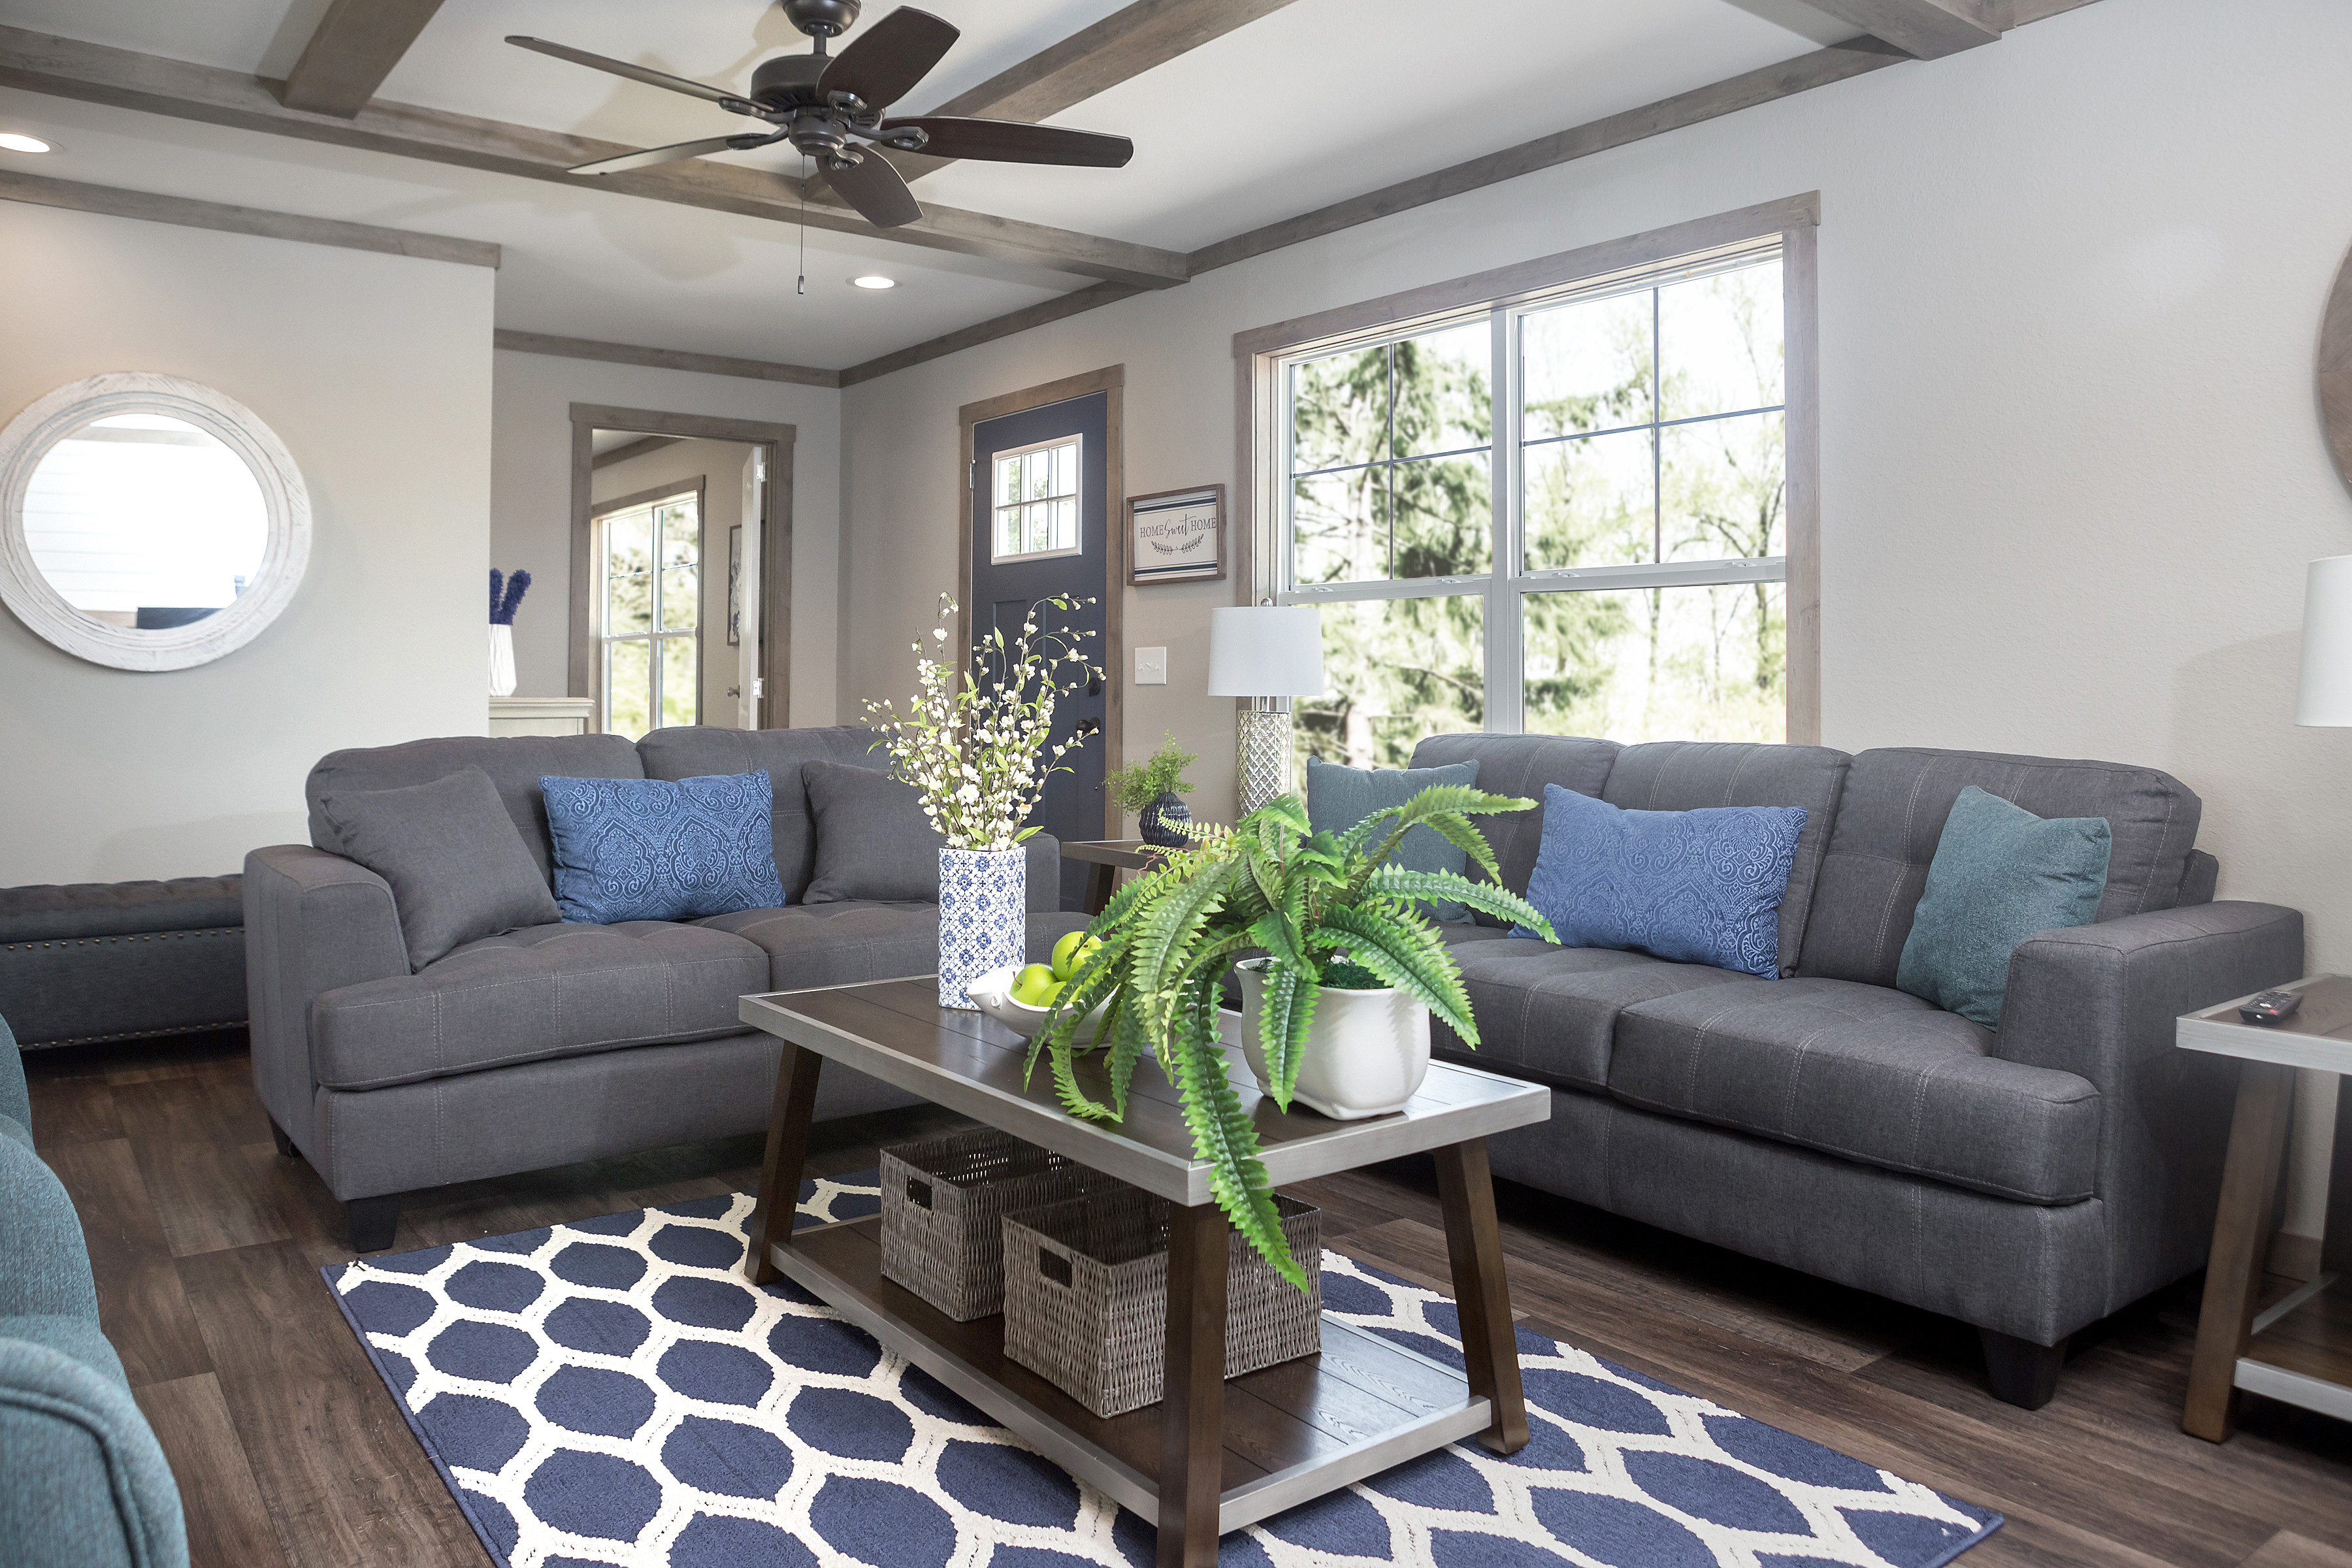 Manufactured home living room with grey couches, coffered ceilings and a round hanging mirror.